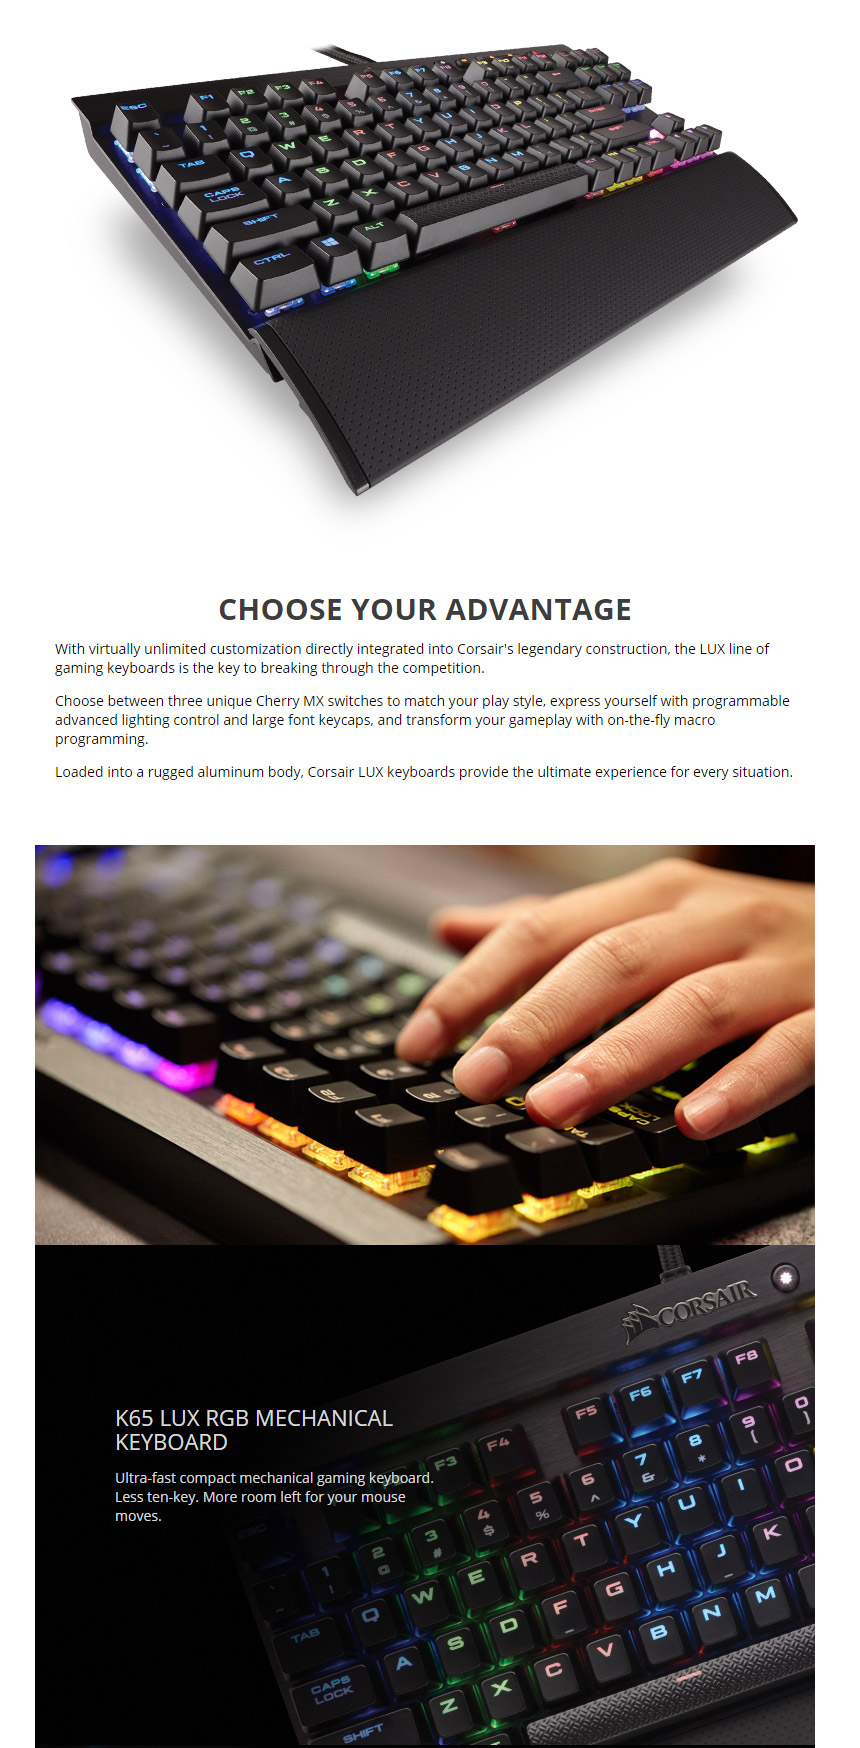 Corsair K65 Lux Rgb Compact Mechanical Gaming Keyboard Cherry Mx Red Switch Product Description